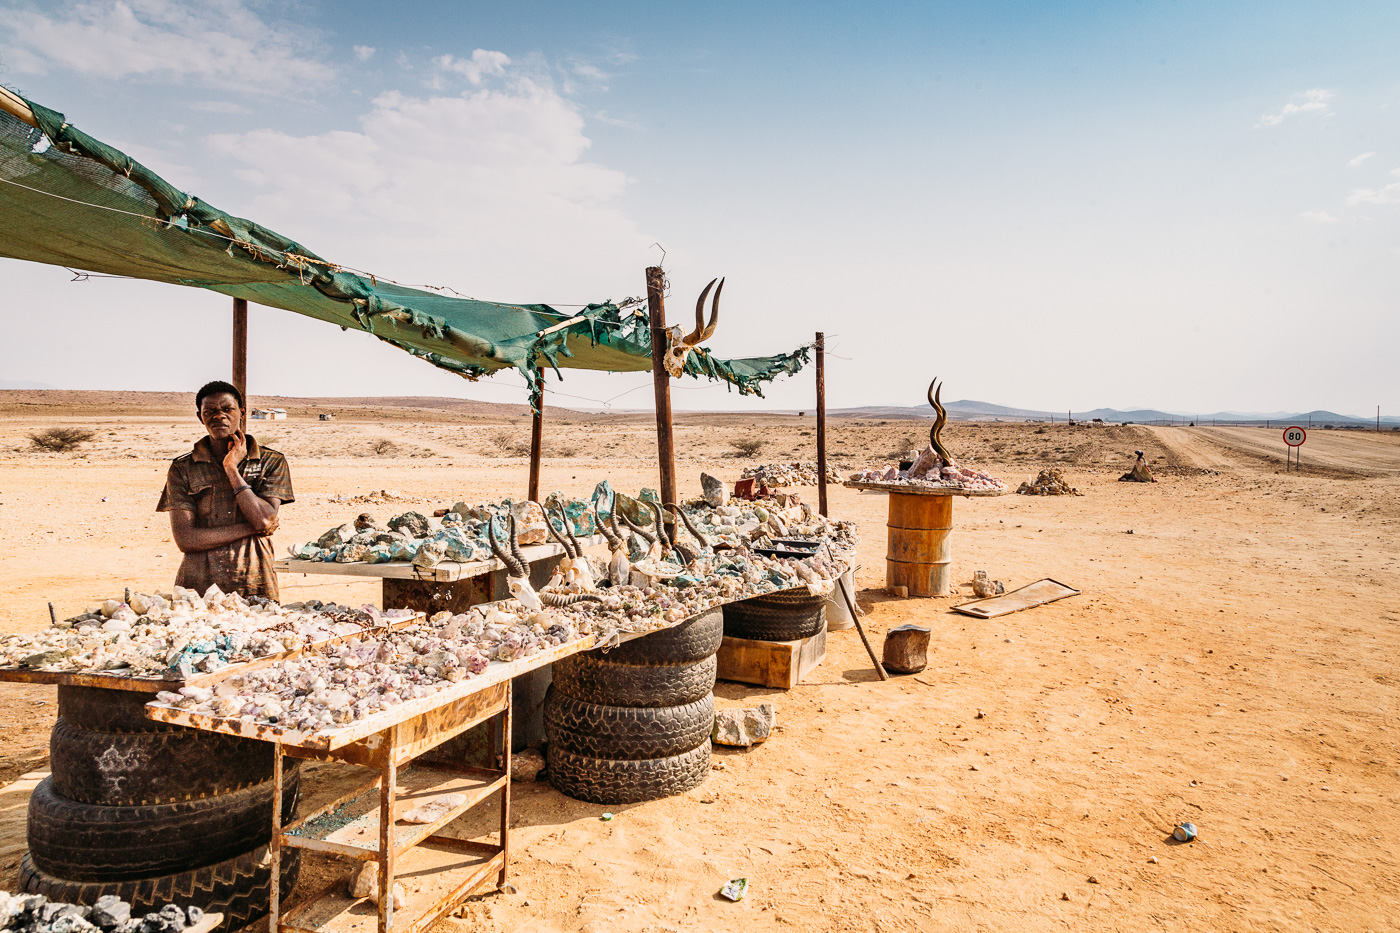 Stopping at the Gems Dealer Stands on our way to Swakopmund on our Namibia Self Drive safari